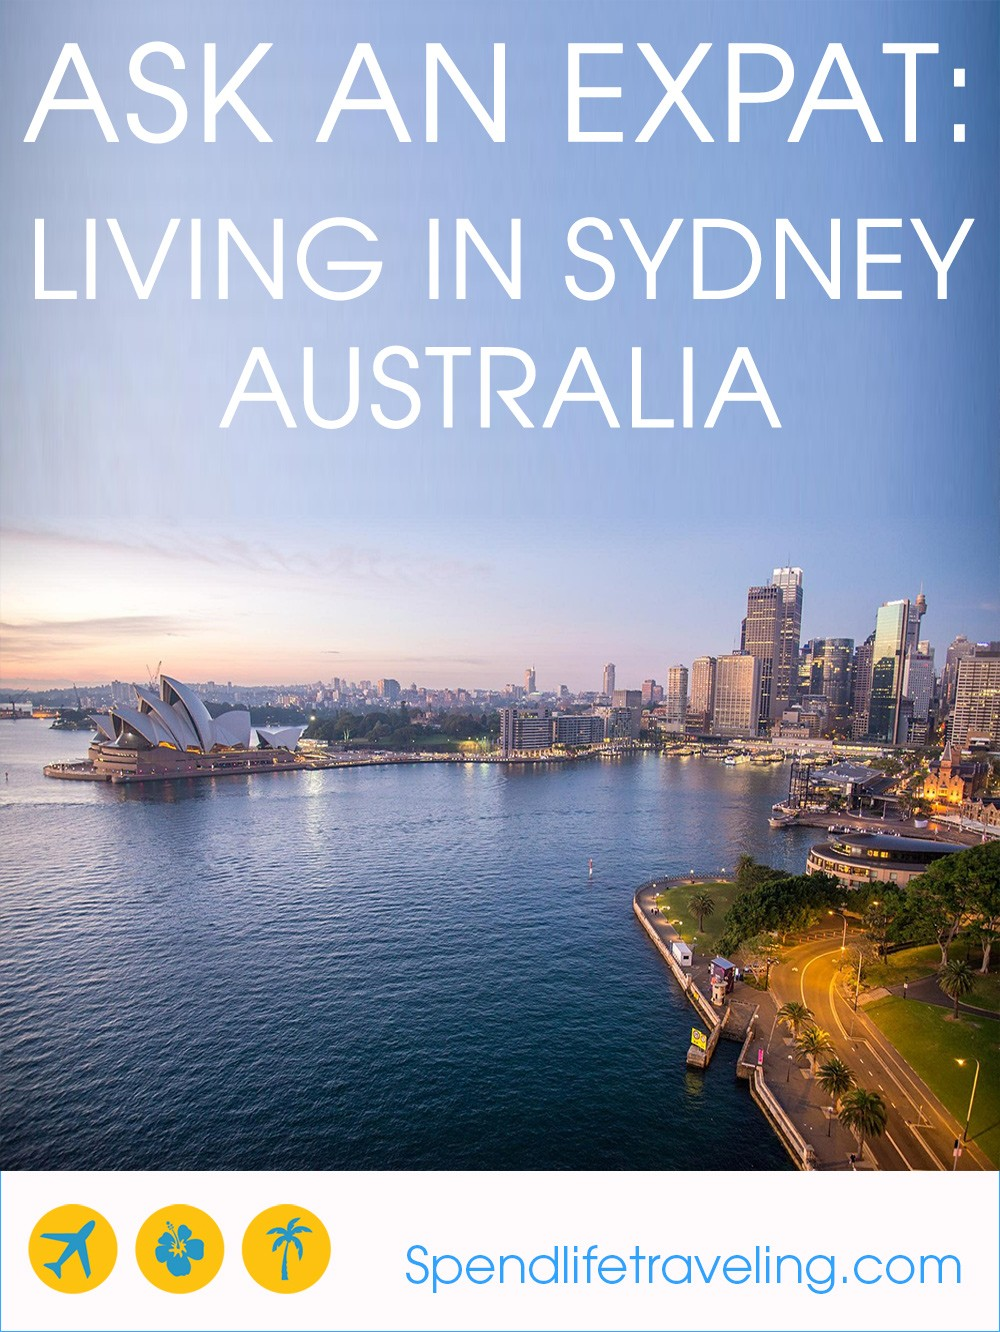 Interview with an expat about moving to and living in Sydney.